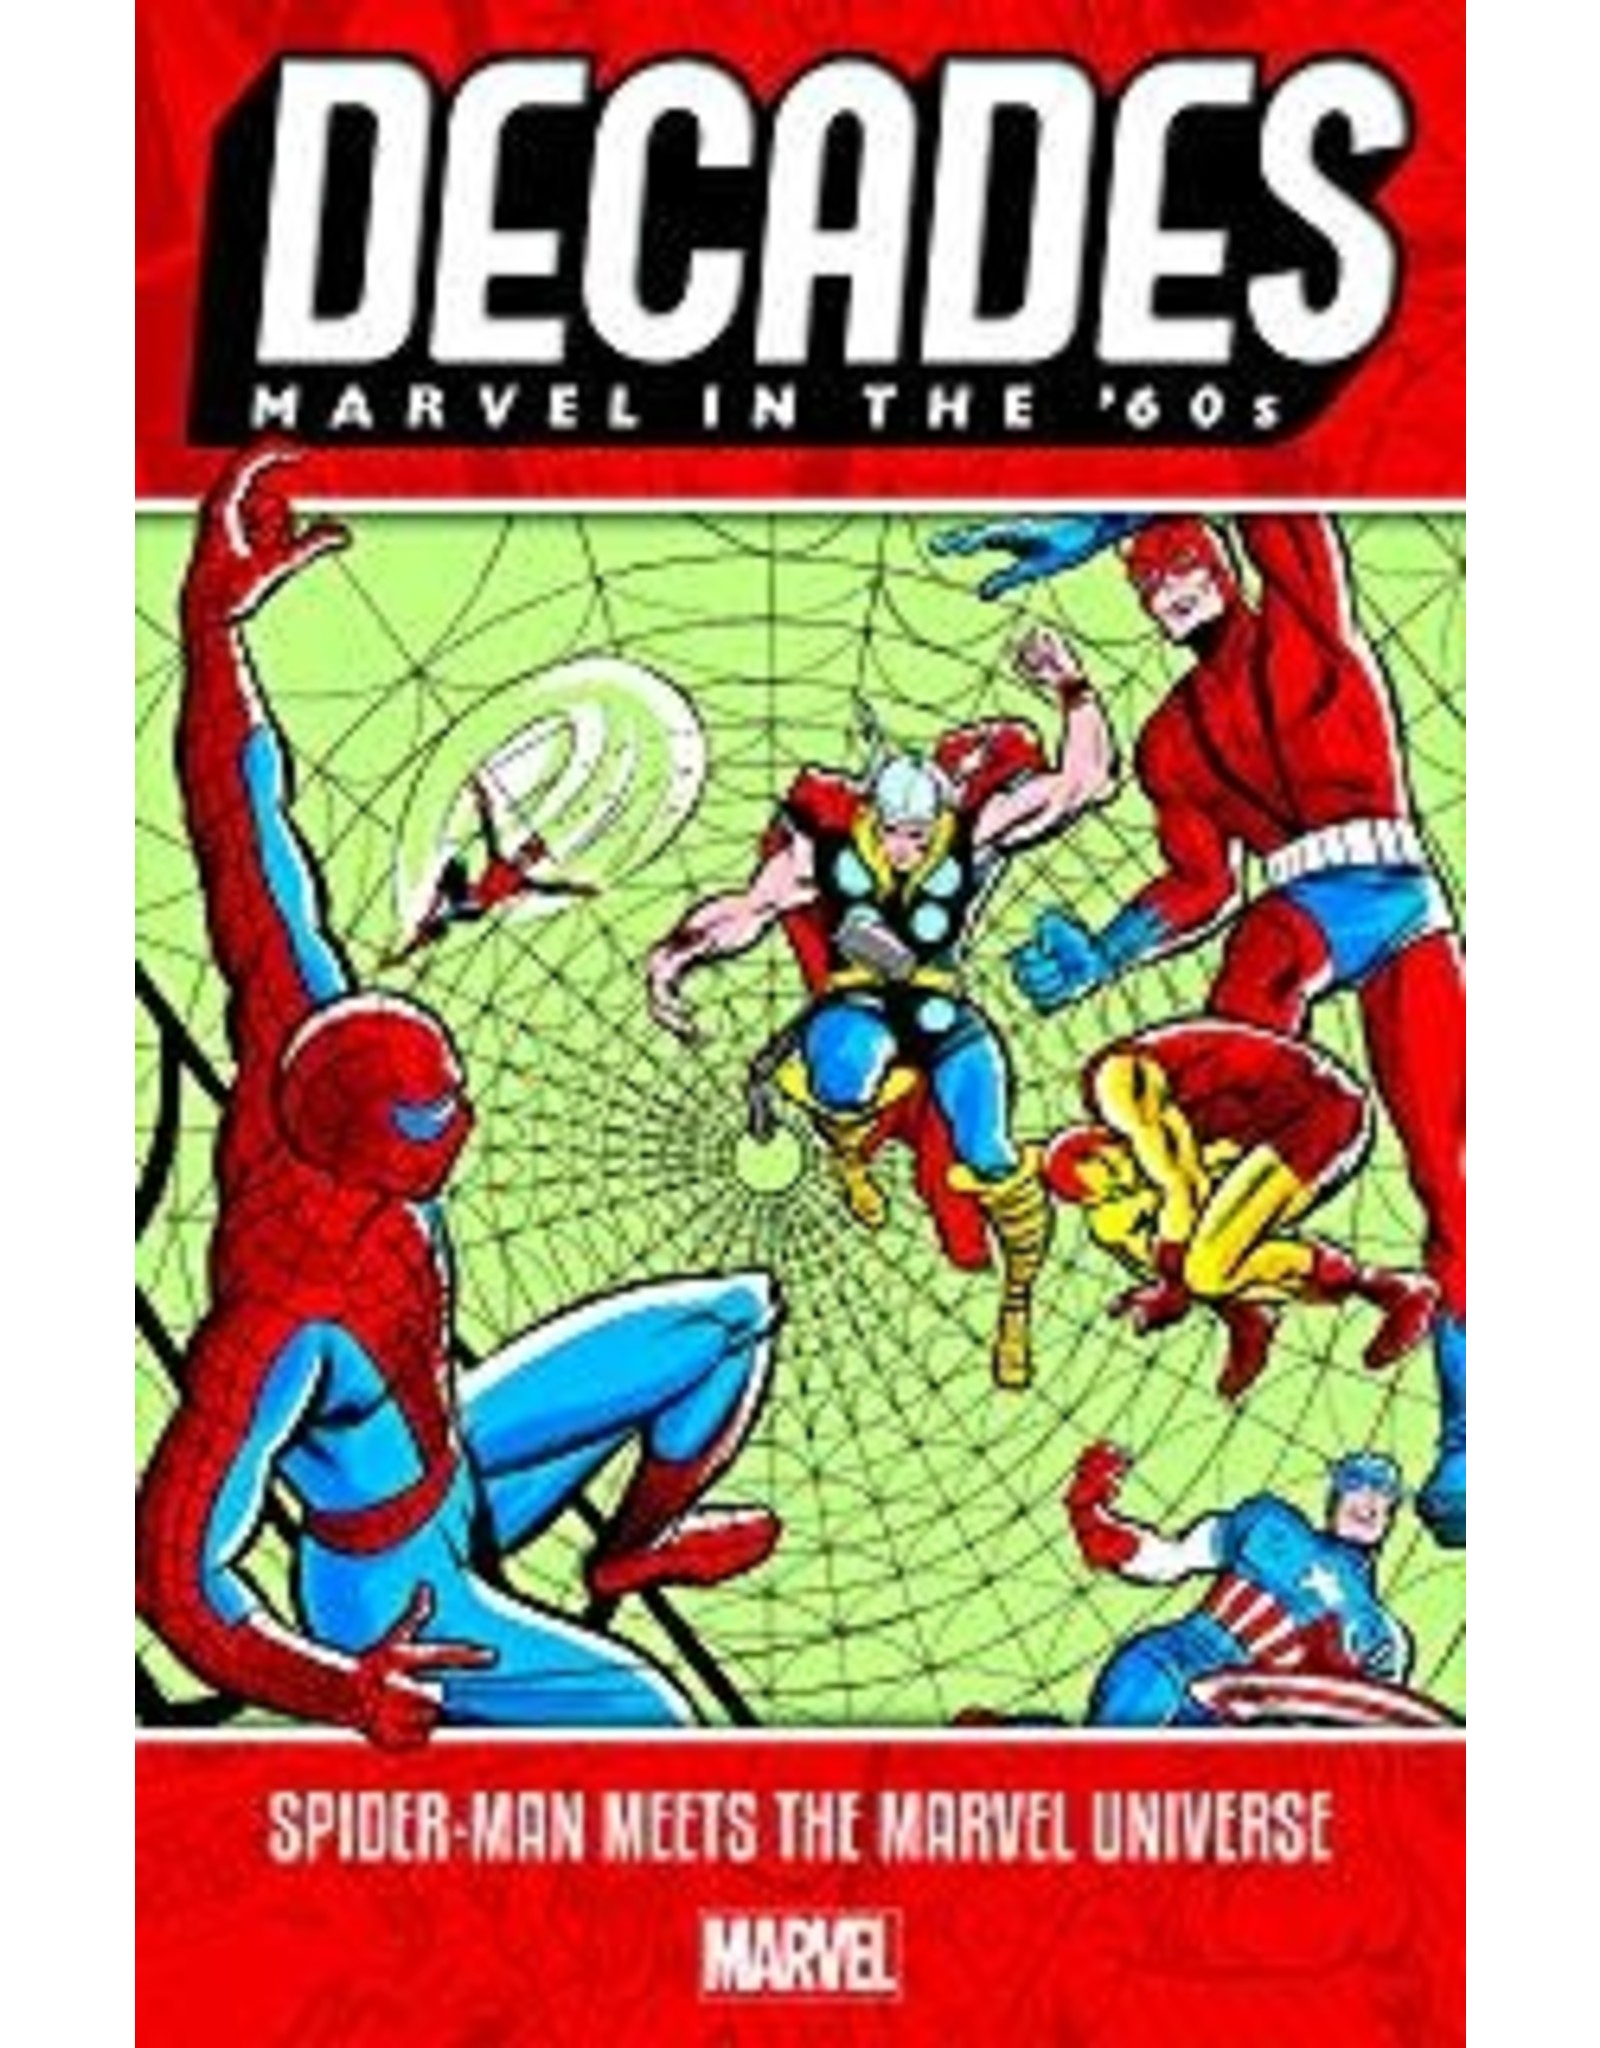 MARVEL COMICS DECADES MARVEL 60S TP SPIDER-MAN MEETS MARVEL UNIVERSE